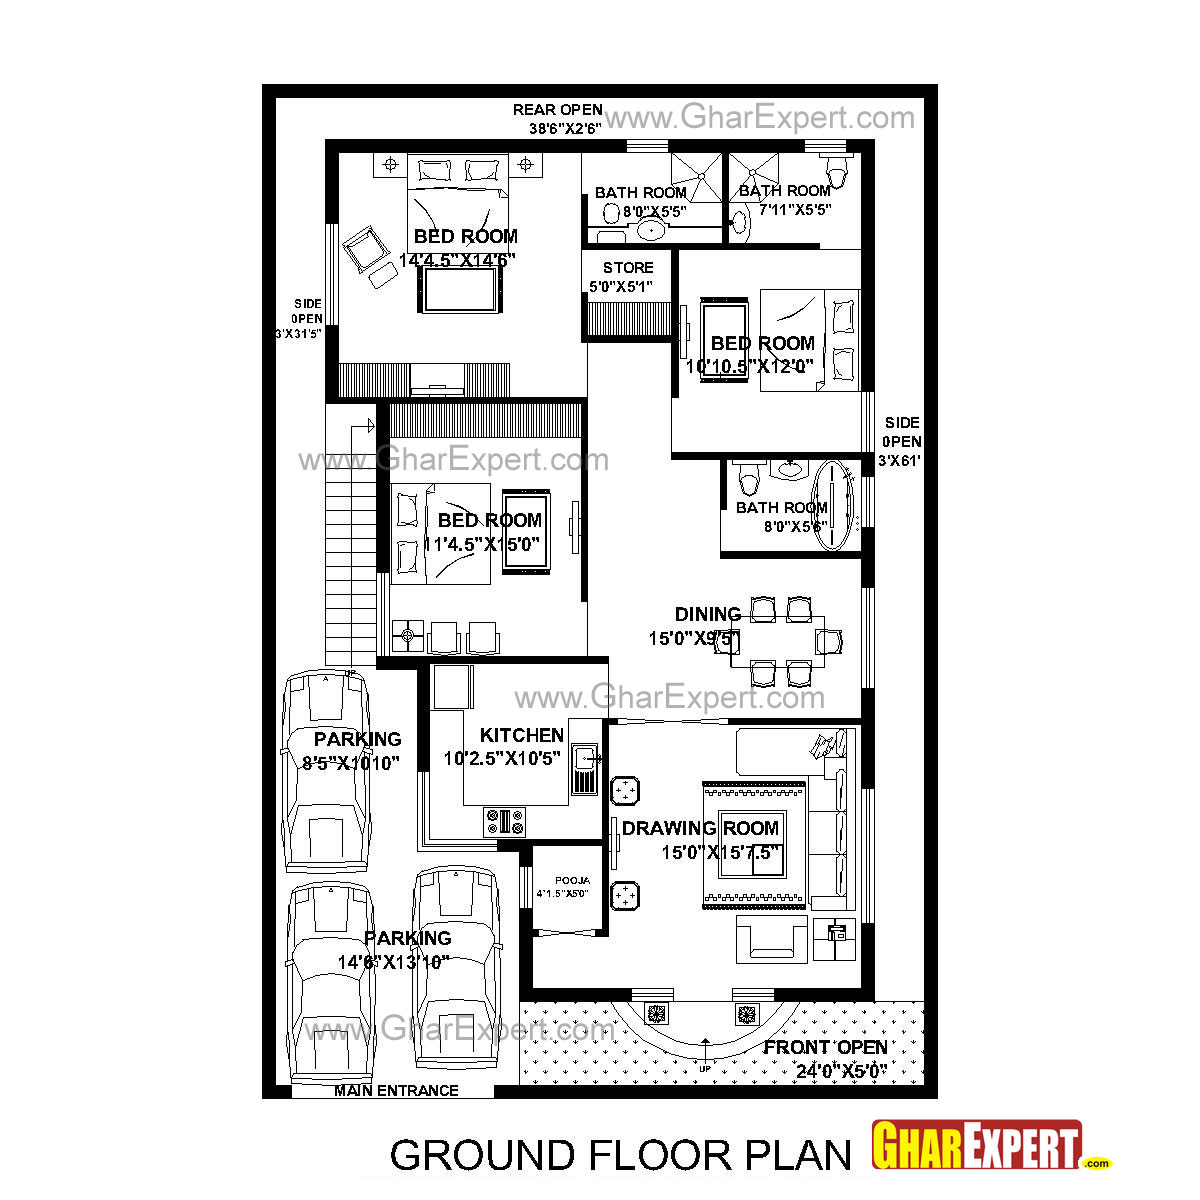 North facing house plans for 60x40 site for House plan websites